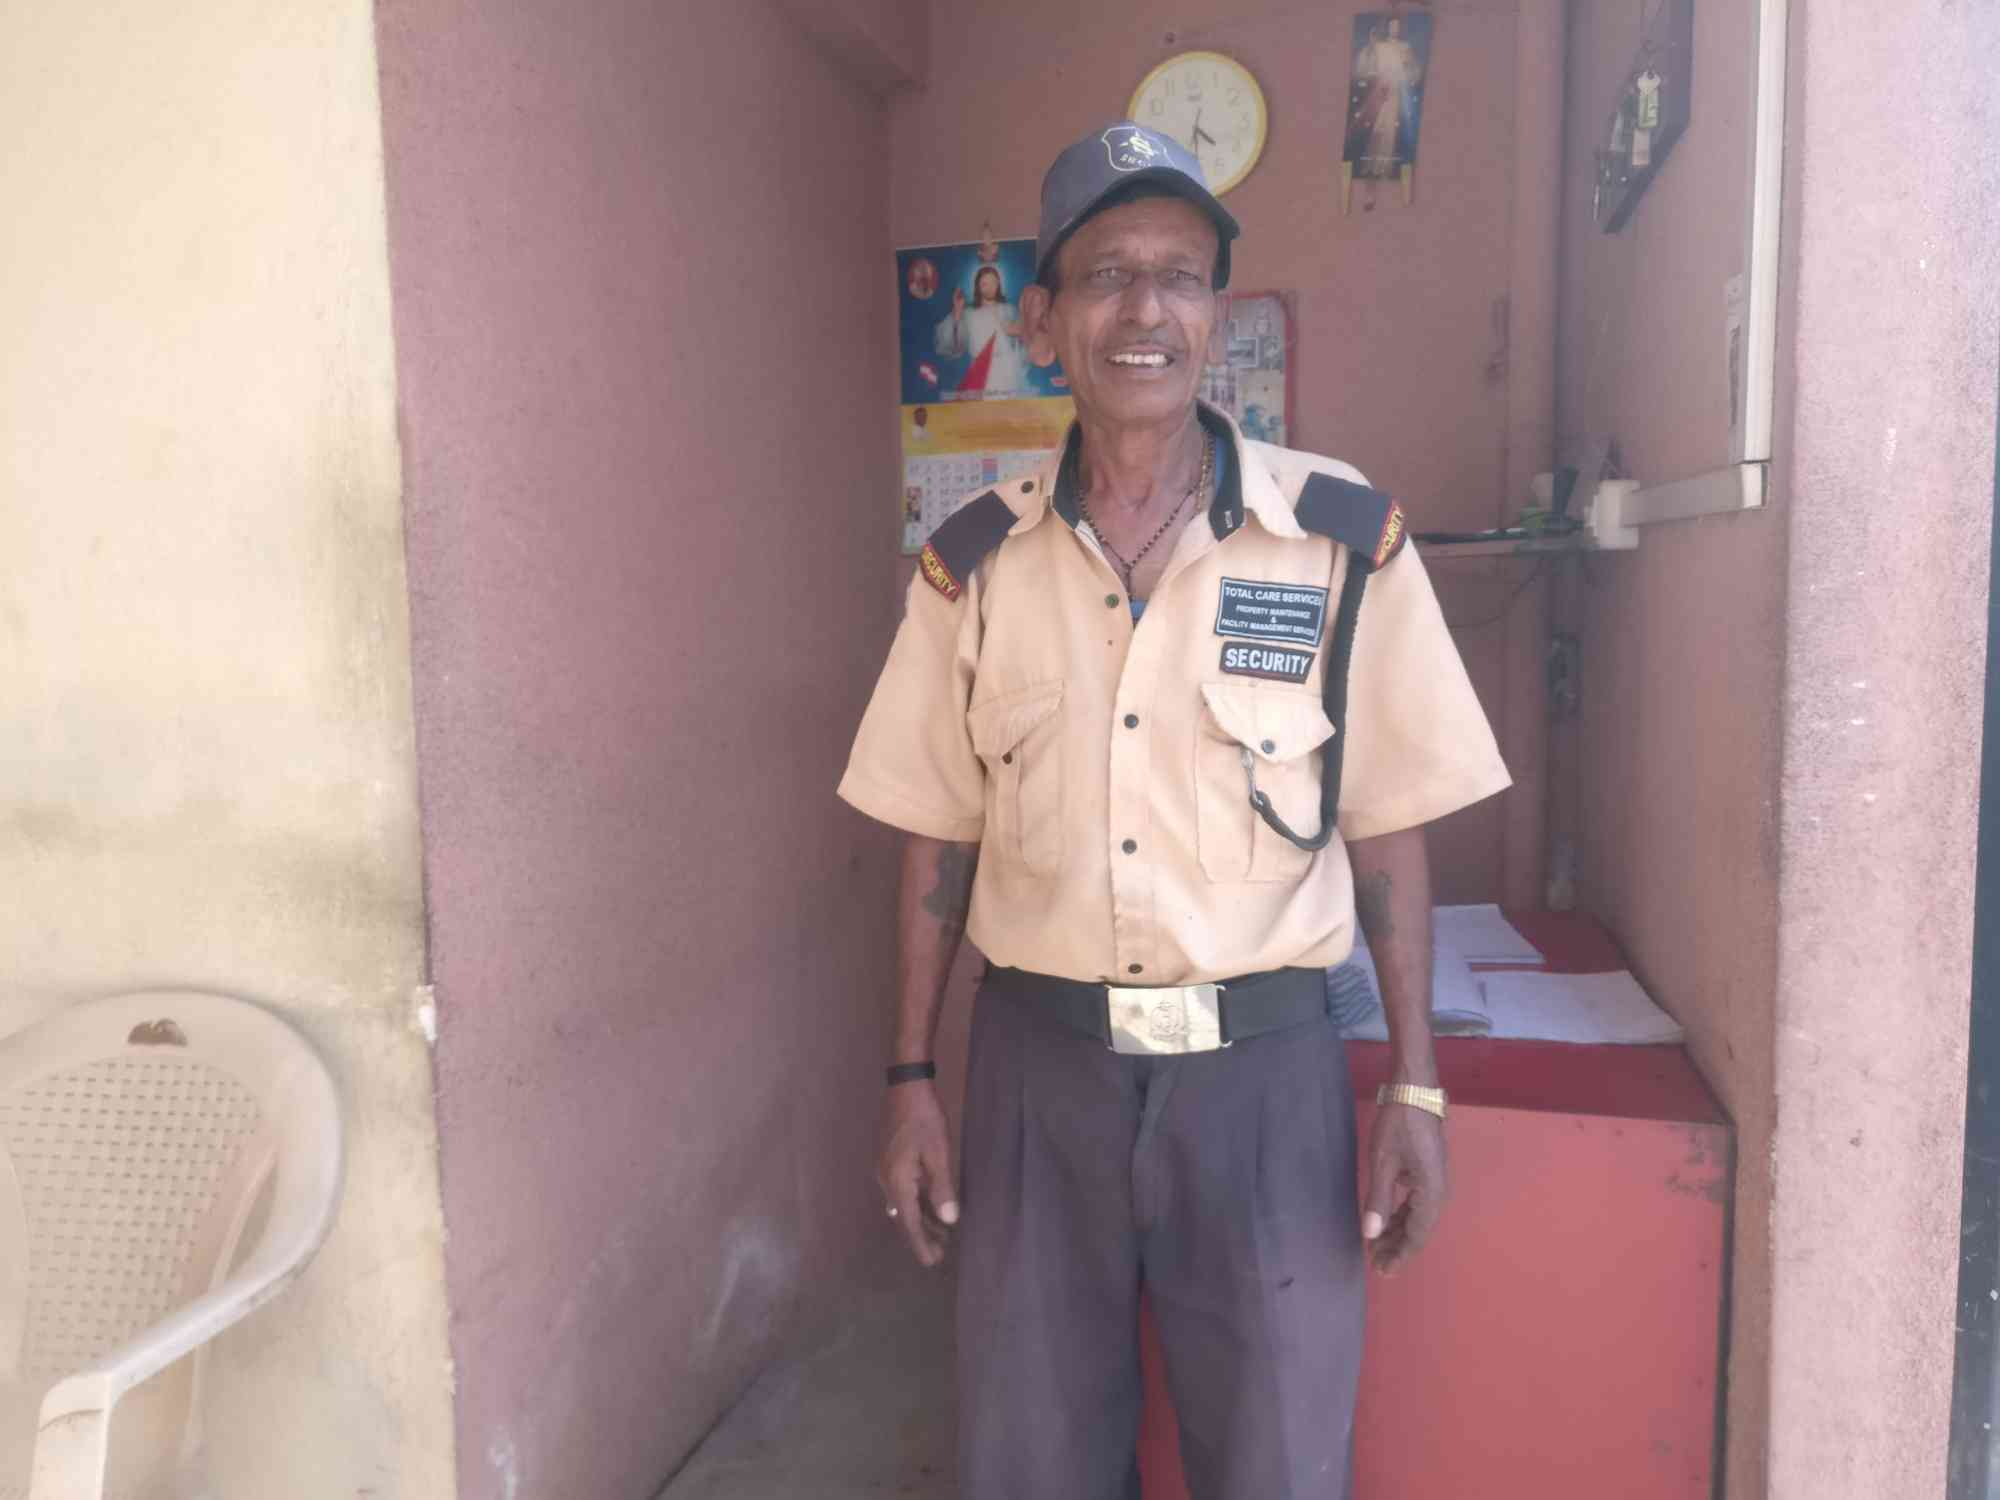 Gunasekhar works as a security guard in Bengaluru. (Photo credit: Nayantara Narayanan).